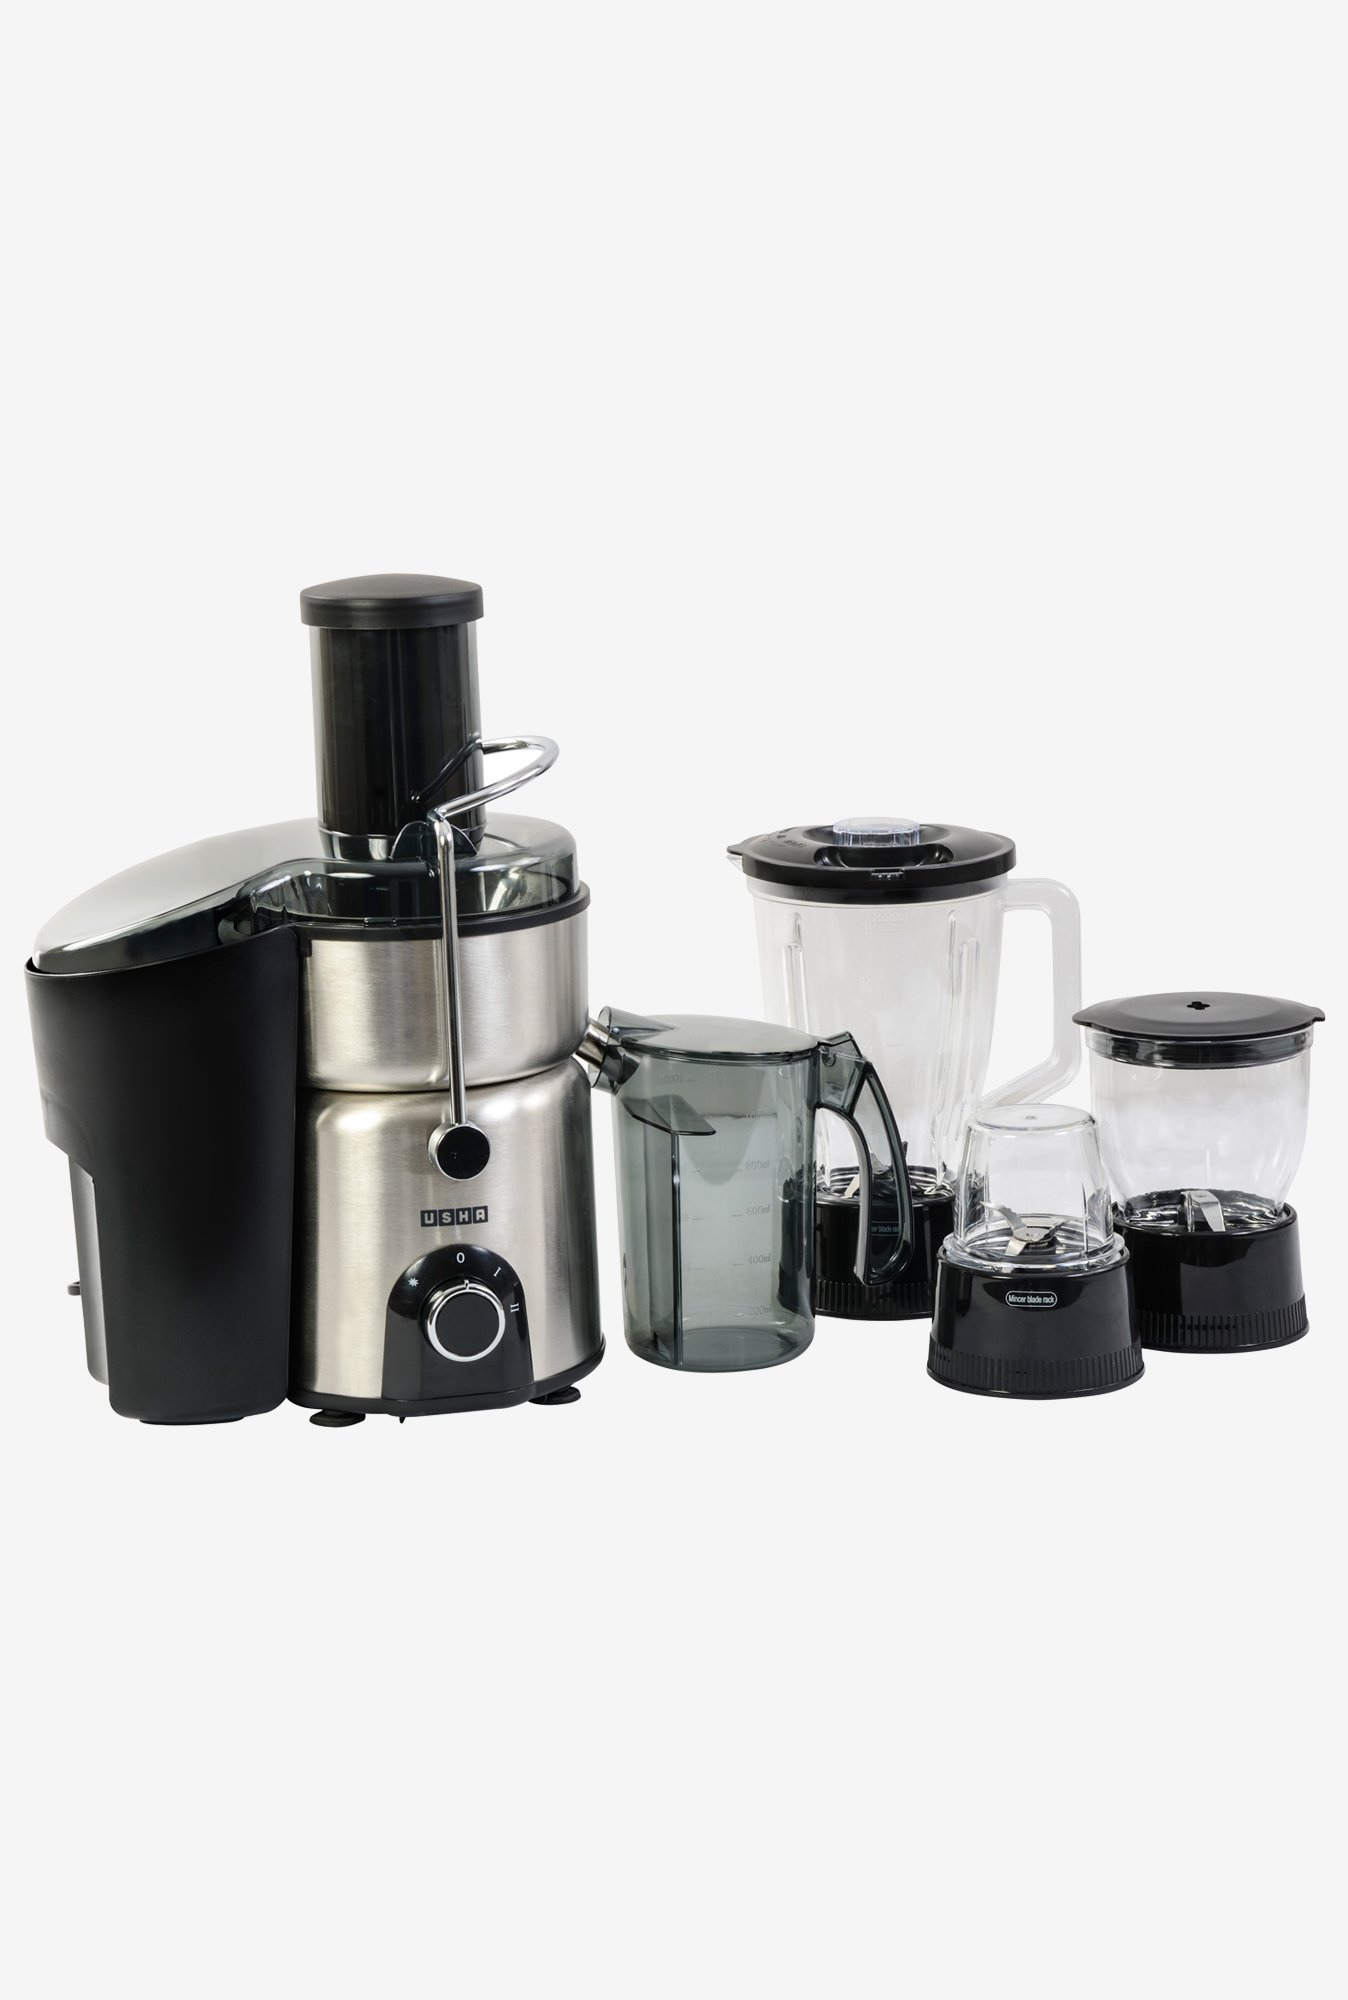 Usha 3274 700 Watt Juicer Mixer Grinder Stainless Steel